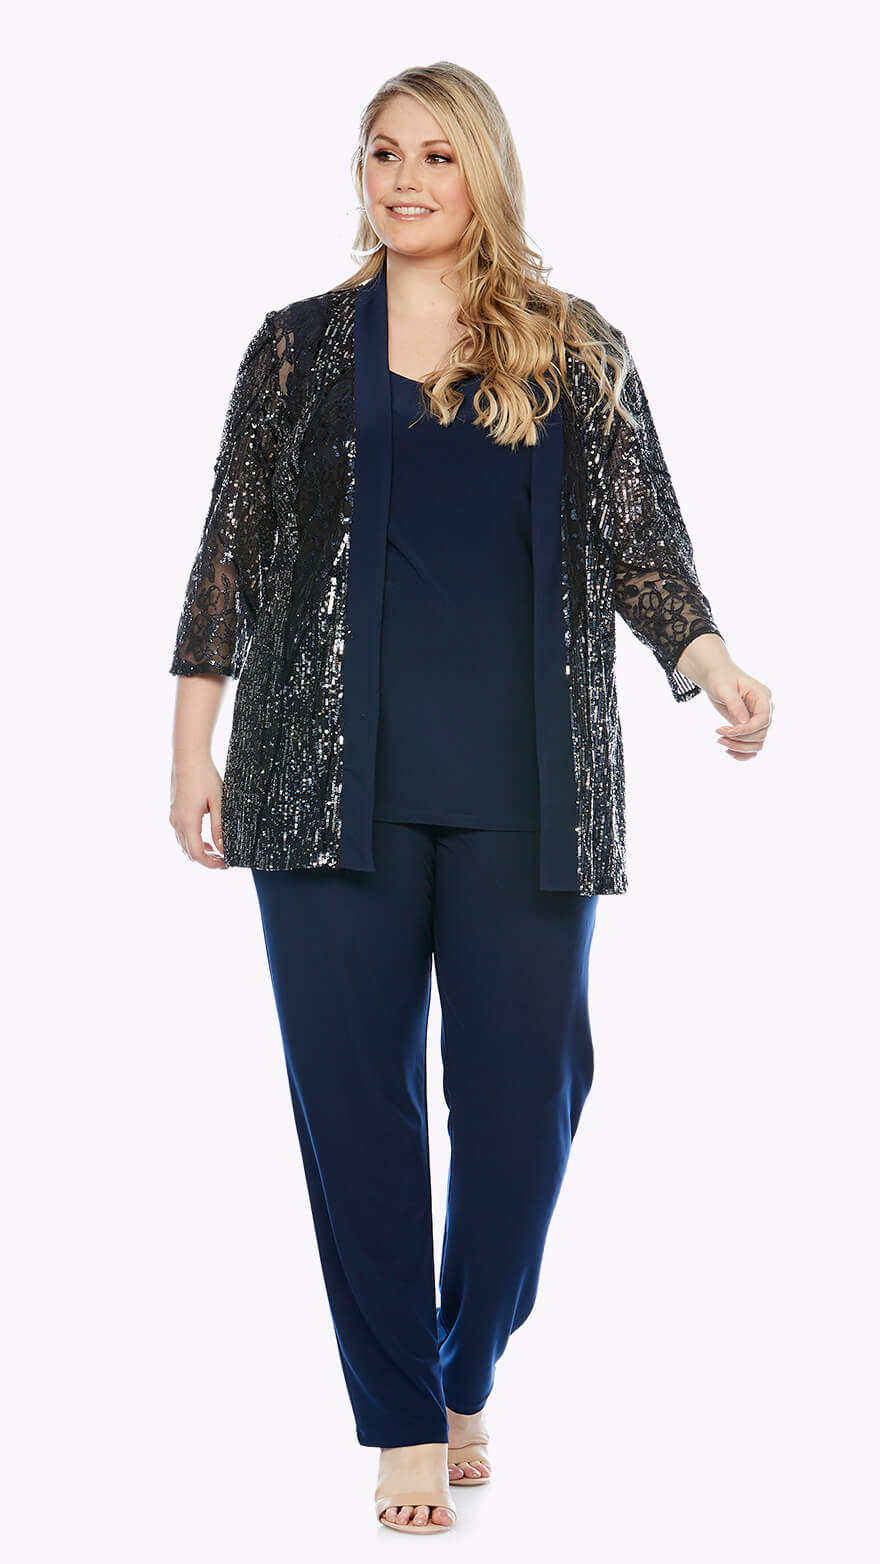 LJ0349 Three-piece pantsuit with embroidered lace jacket with 3/4 sleeves